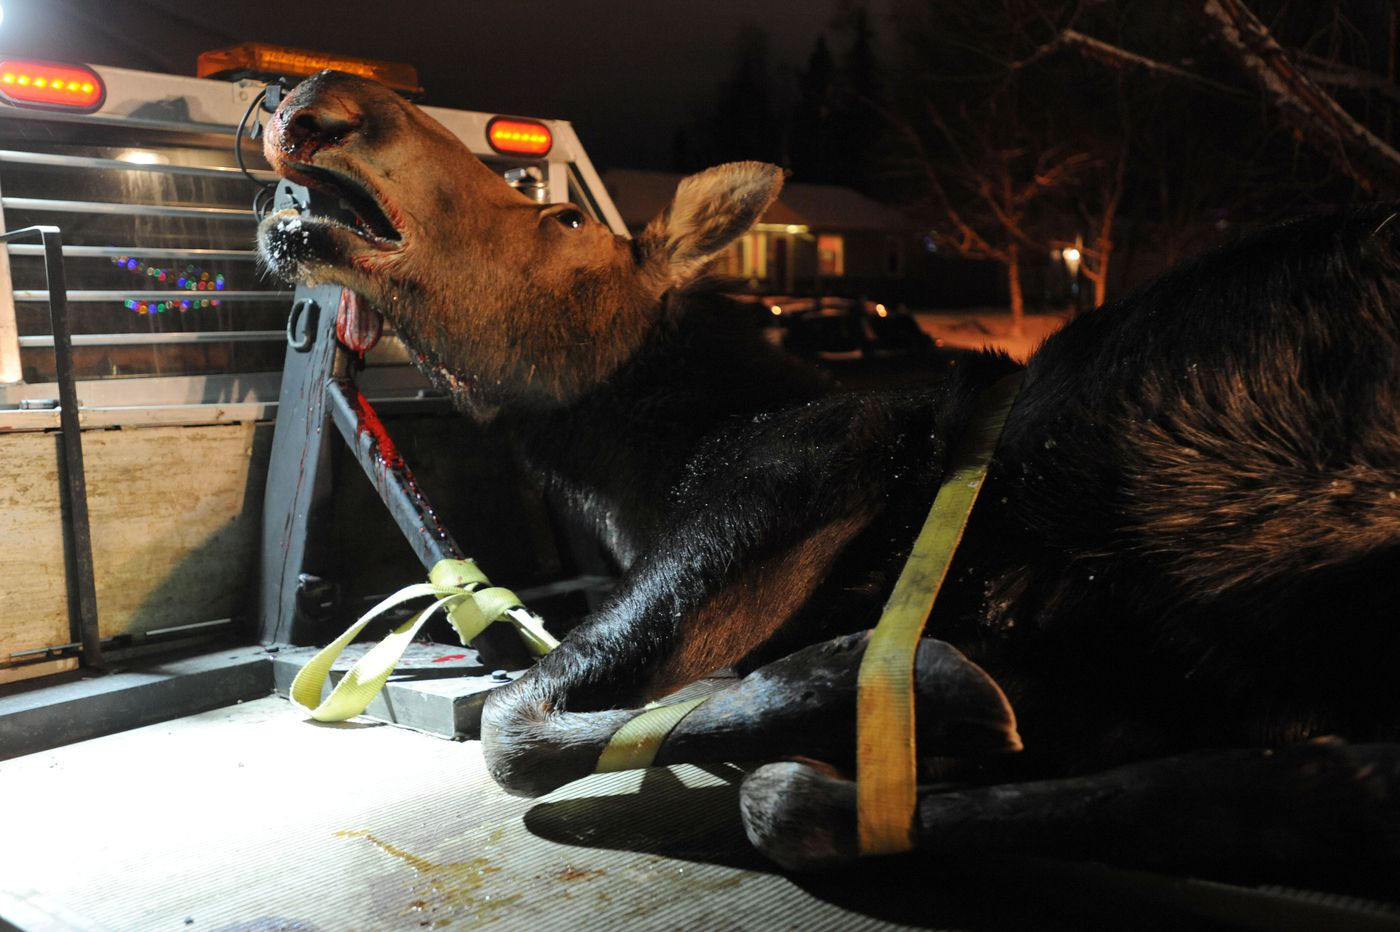 A moose, killed on the Anchorage hillside Monday evening, Dec. 14, 2015, was picked up and delivered by Moose Federation staff to a house in east Anchorage later that evening. A crew assembled to field dress the moose.